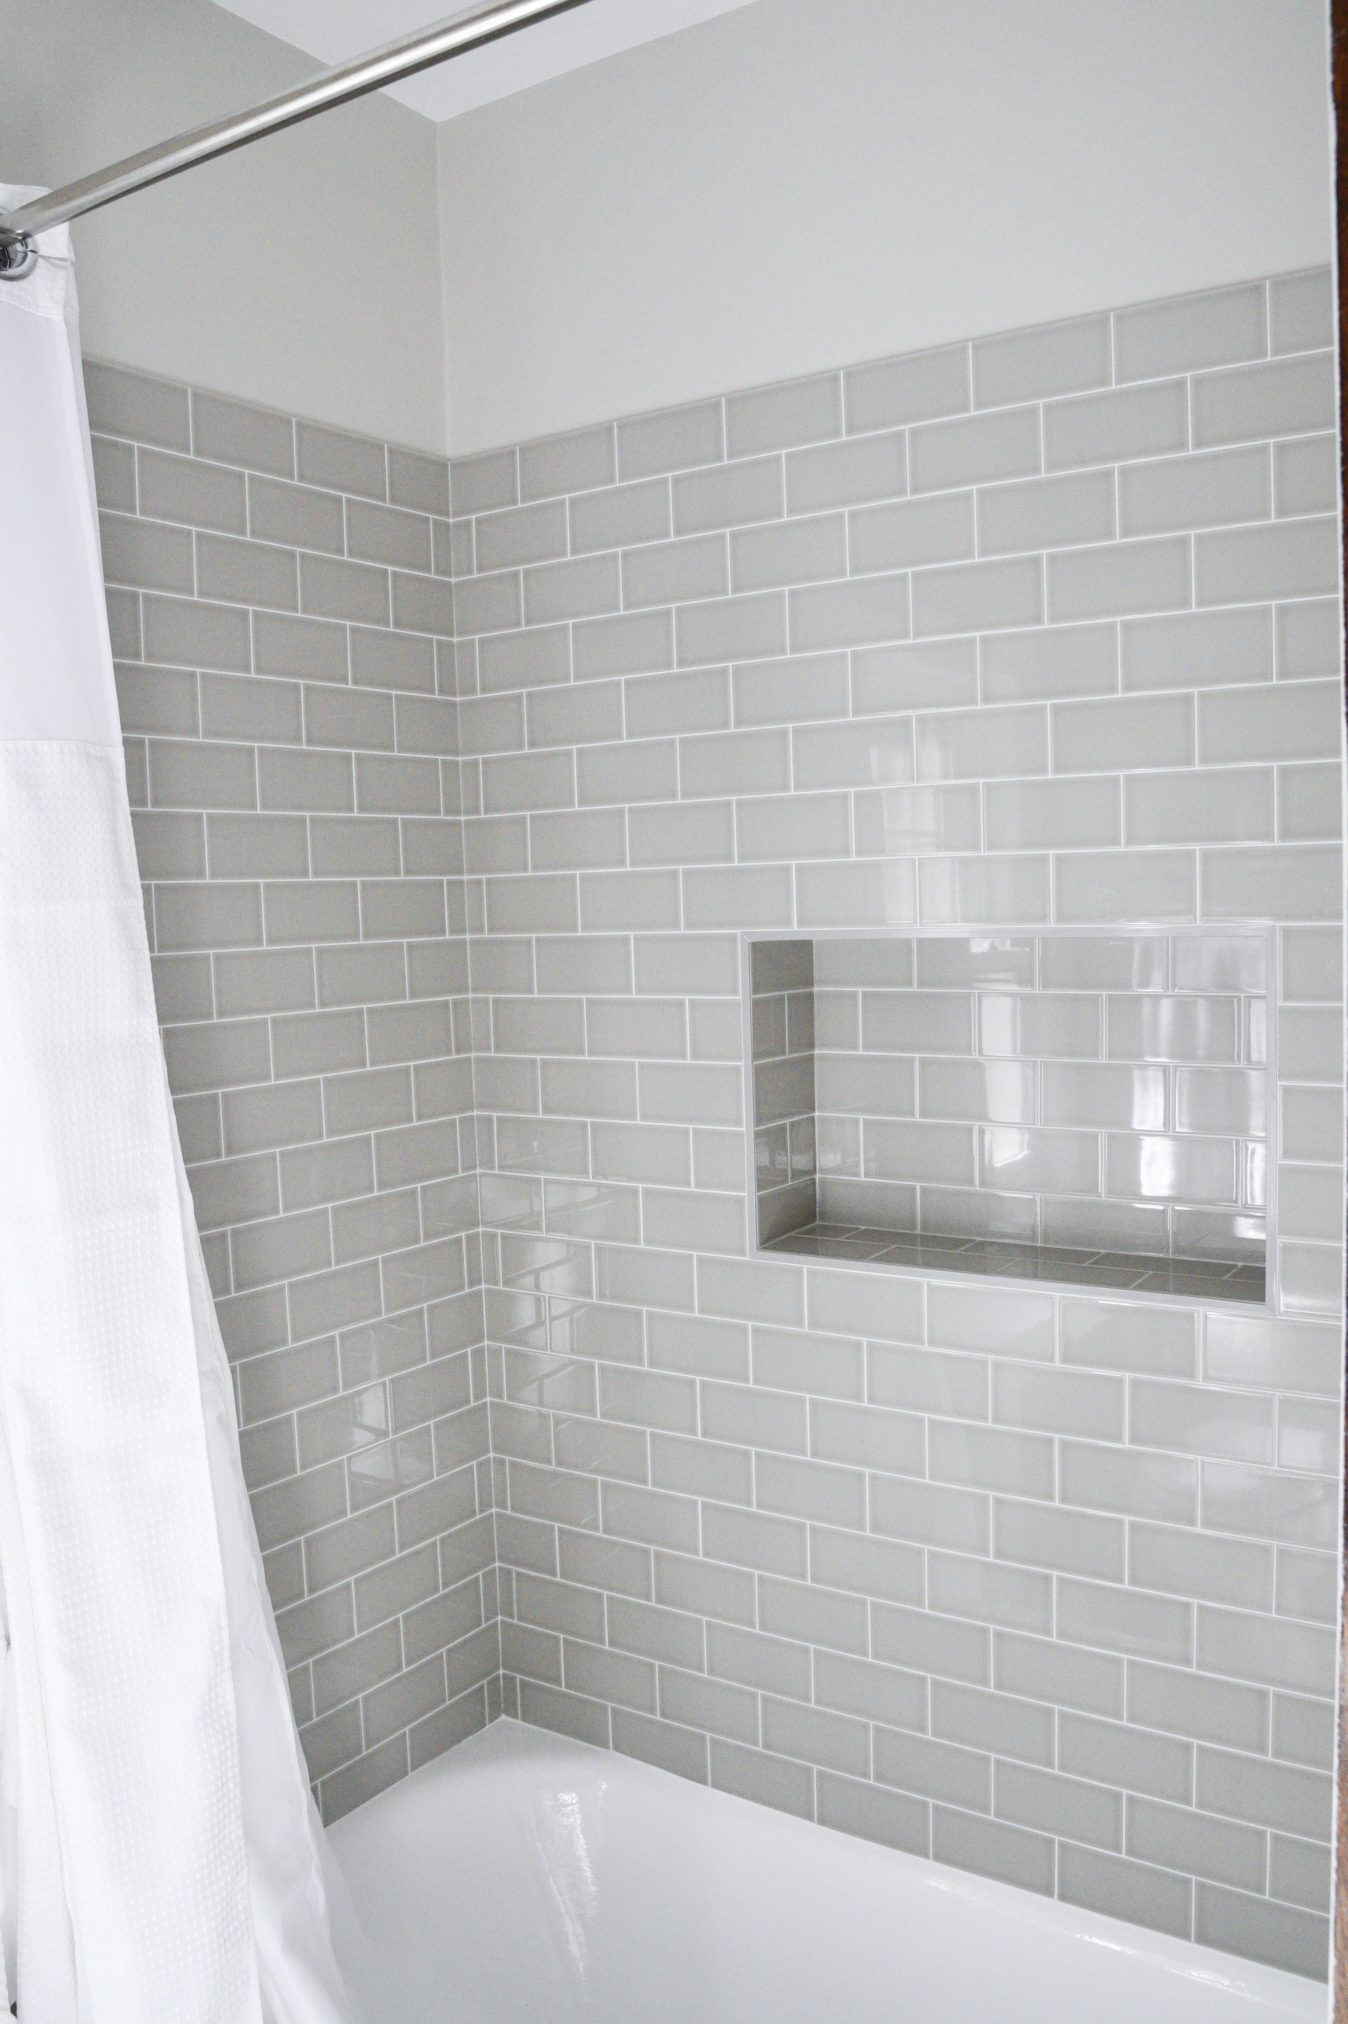 Home bloggers home tour bathroom styling tips grey subway tiles home bloggers home tour bathroom styling tips grey subway tiles homewithkeki dailygadgetfo Images